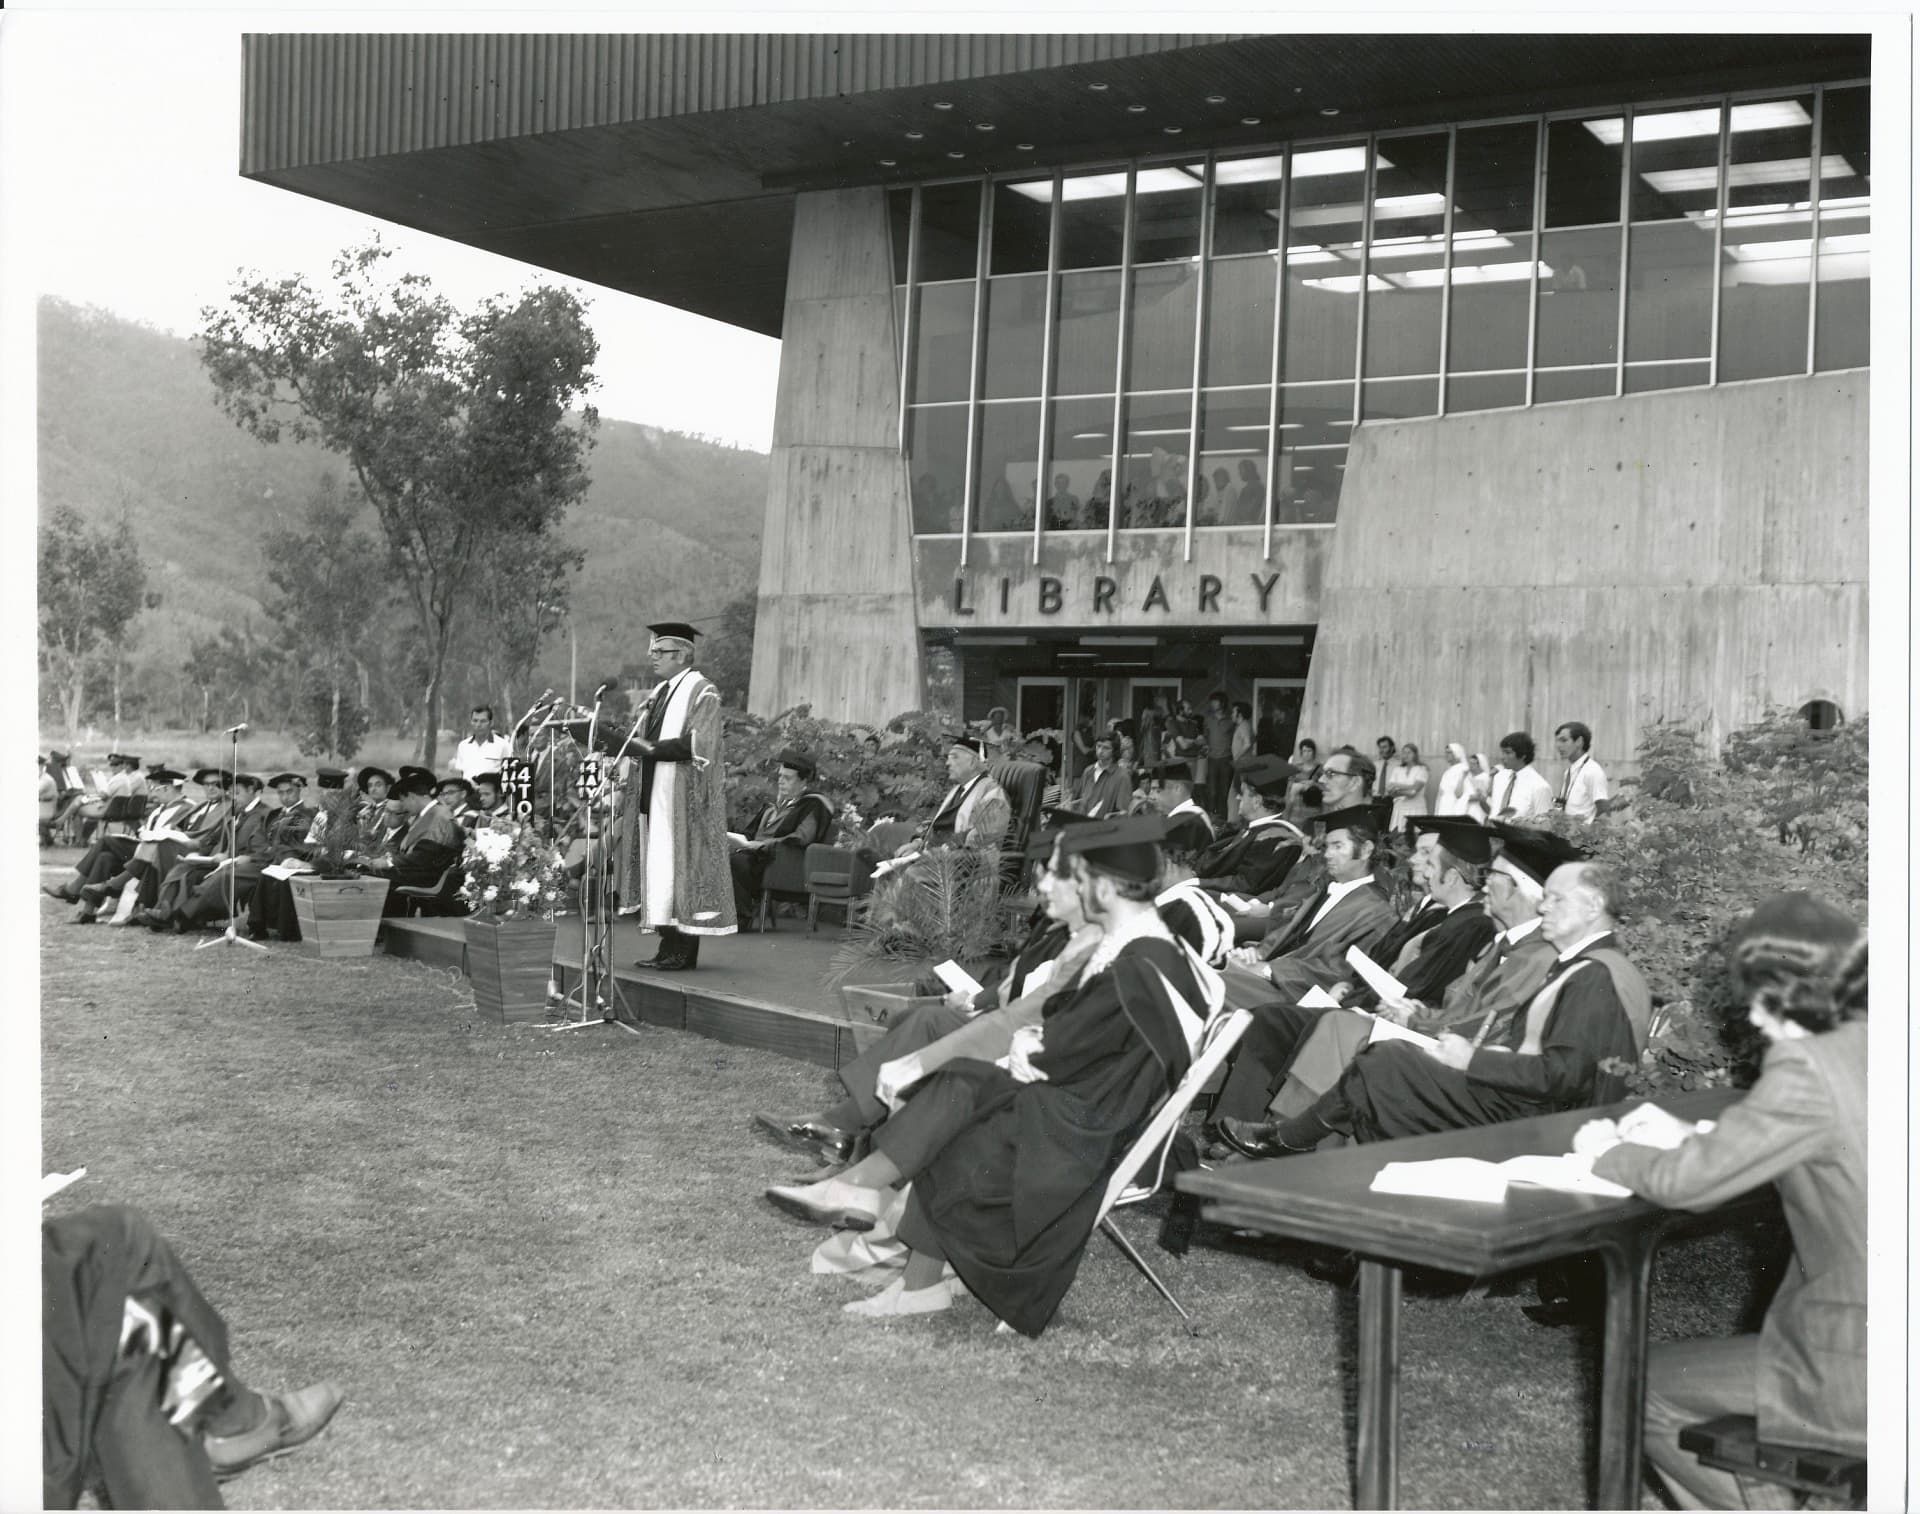 1972 Graduation Ceremony